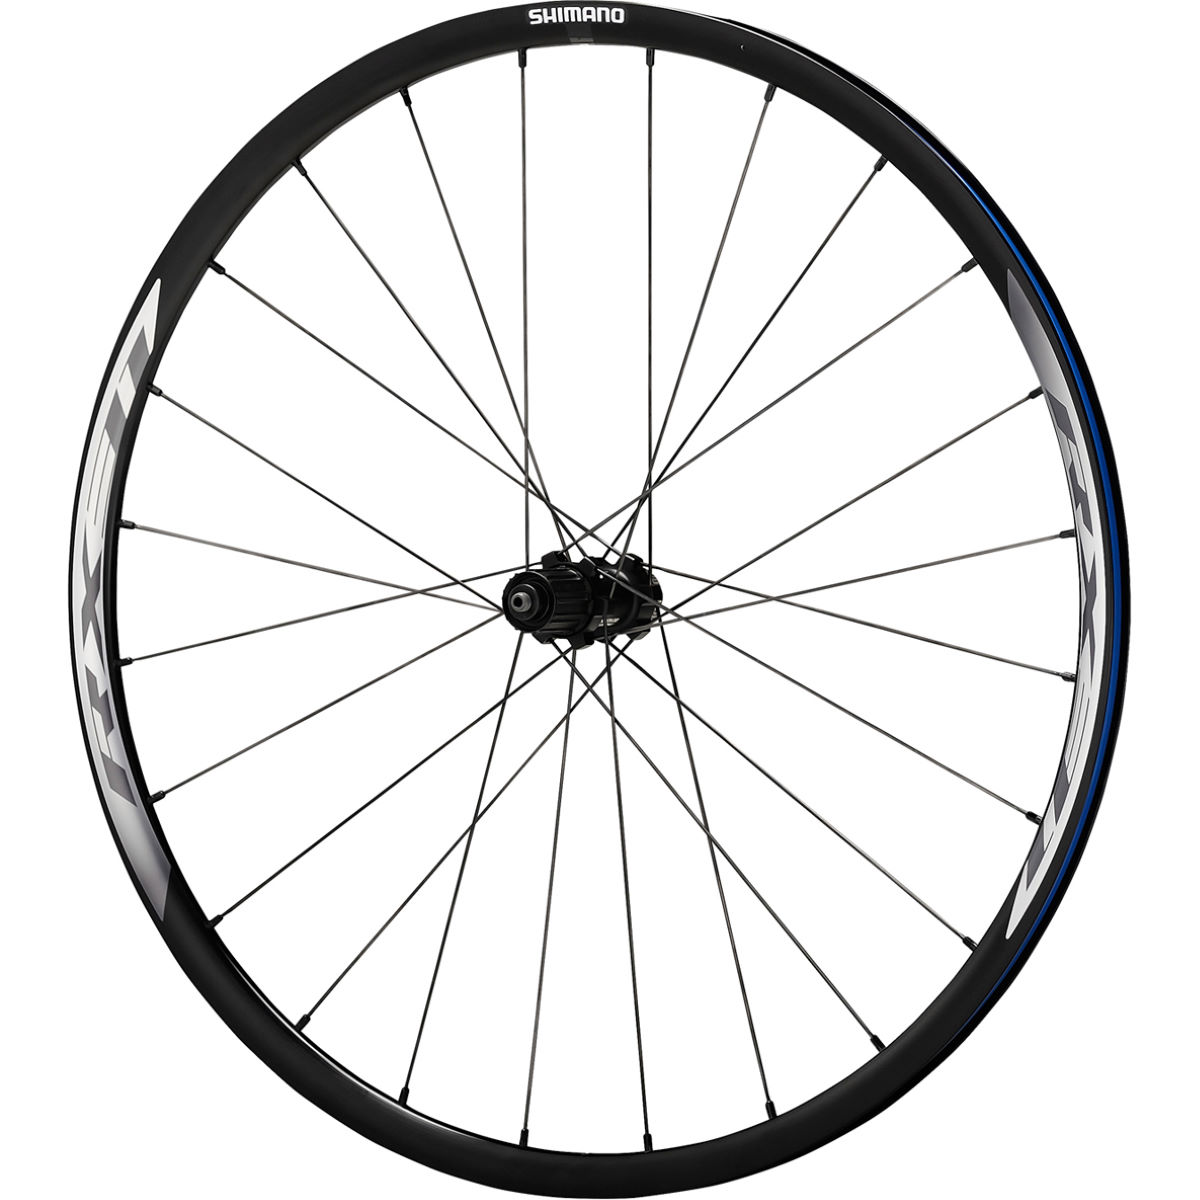 Shimano RX31 Road Disc Brake Rear Wheel (Centrelock)   Performance Wheels